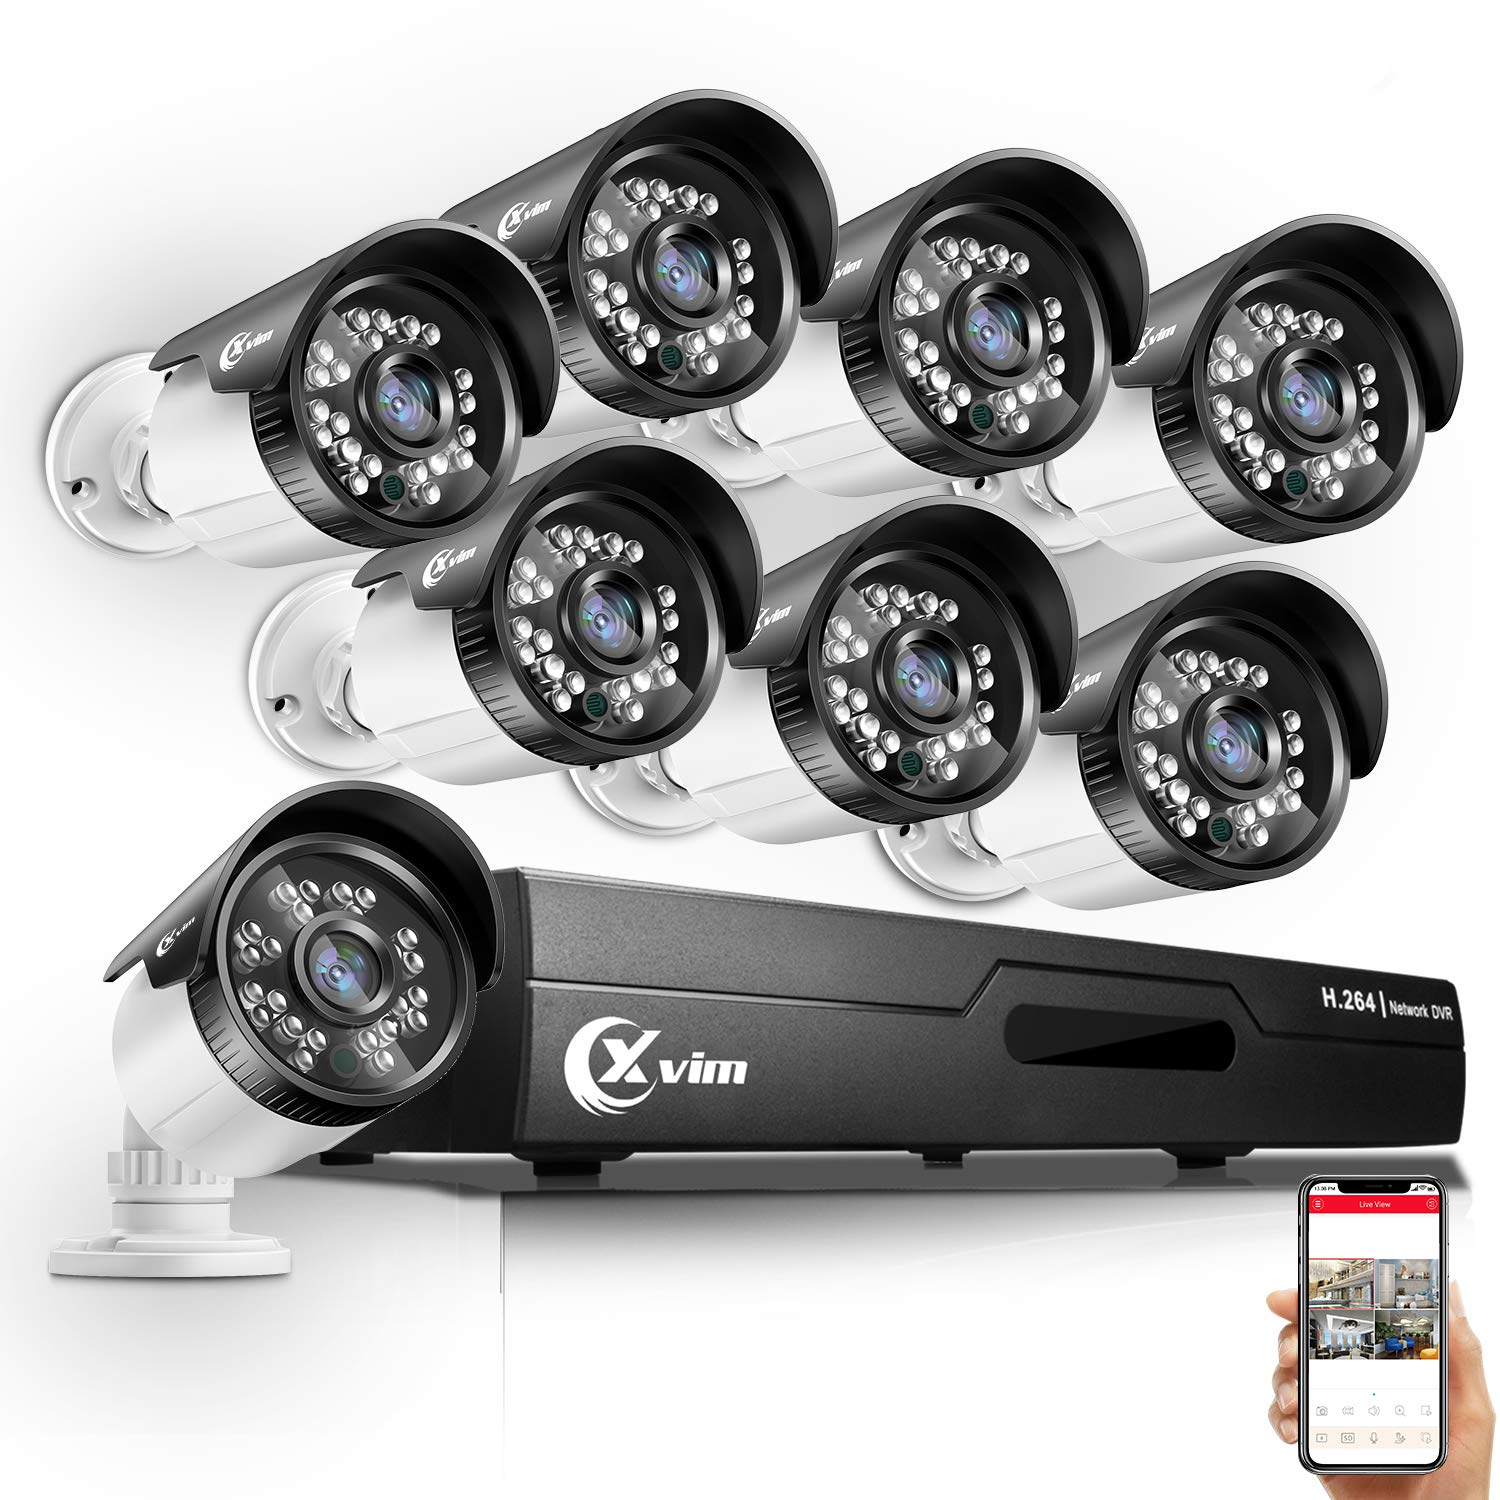 XVIM 8CH HD-TVI 720P Security Camera System,1080N HDMI CCTV DVR Recorder with 8pcs 1.0MP 720P 85ft Night Vision Outdoor Weatherproof Bullet Home Surveillance Cameras No Hard Drive